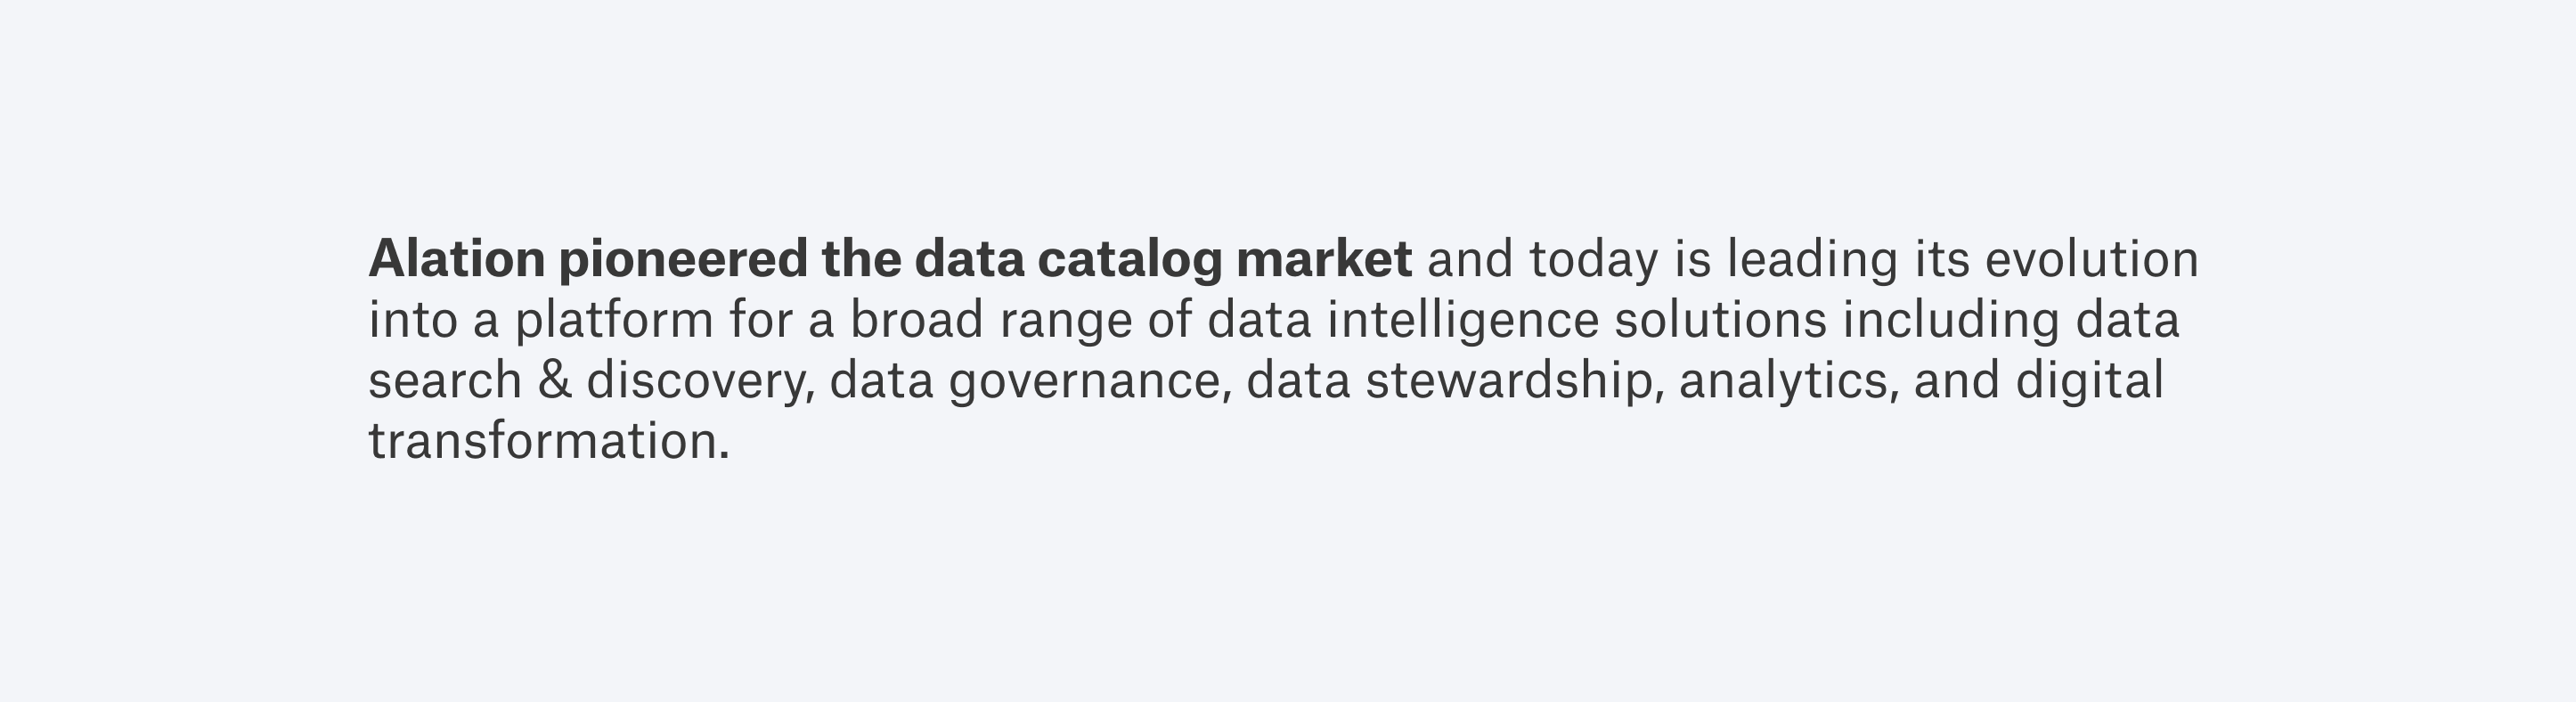 Alation pioneered the data catalog market and today is leading its evolution into a platform for a broad range of data intelligence solutions including data search & discovery, data governance, data stewardship, analytics, and digital transformation.